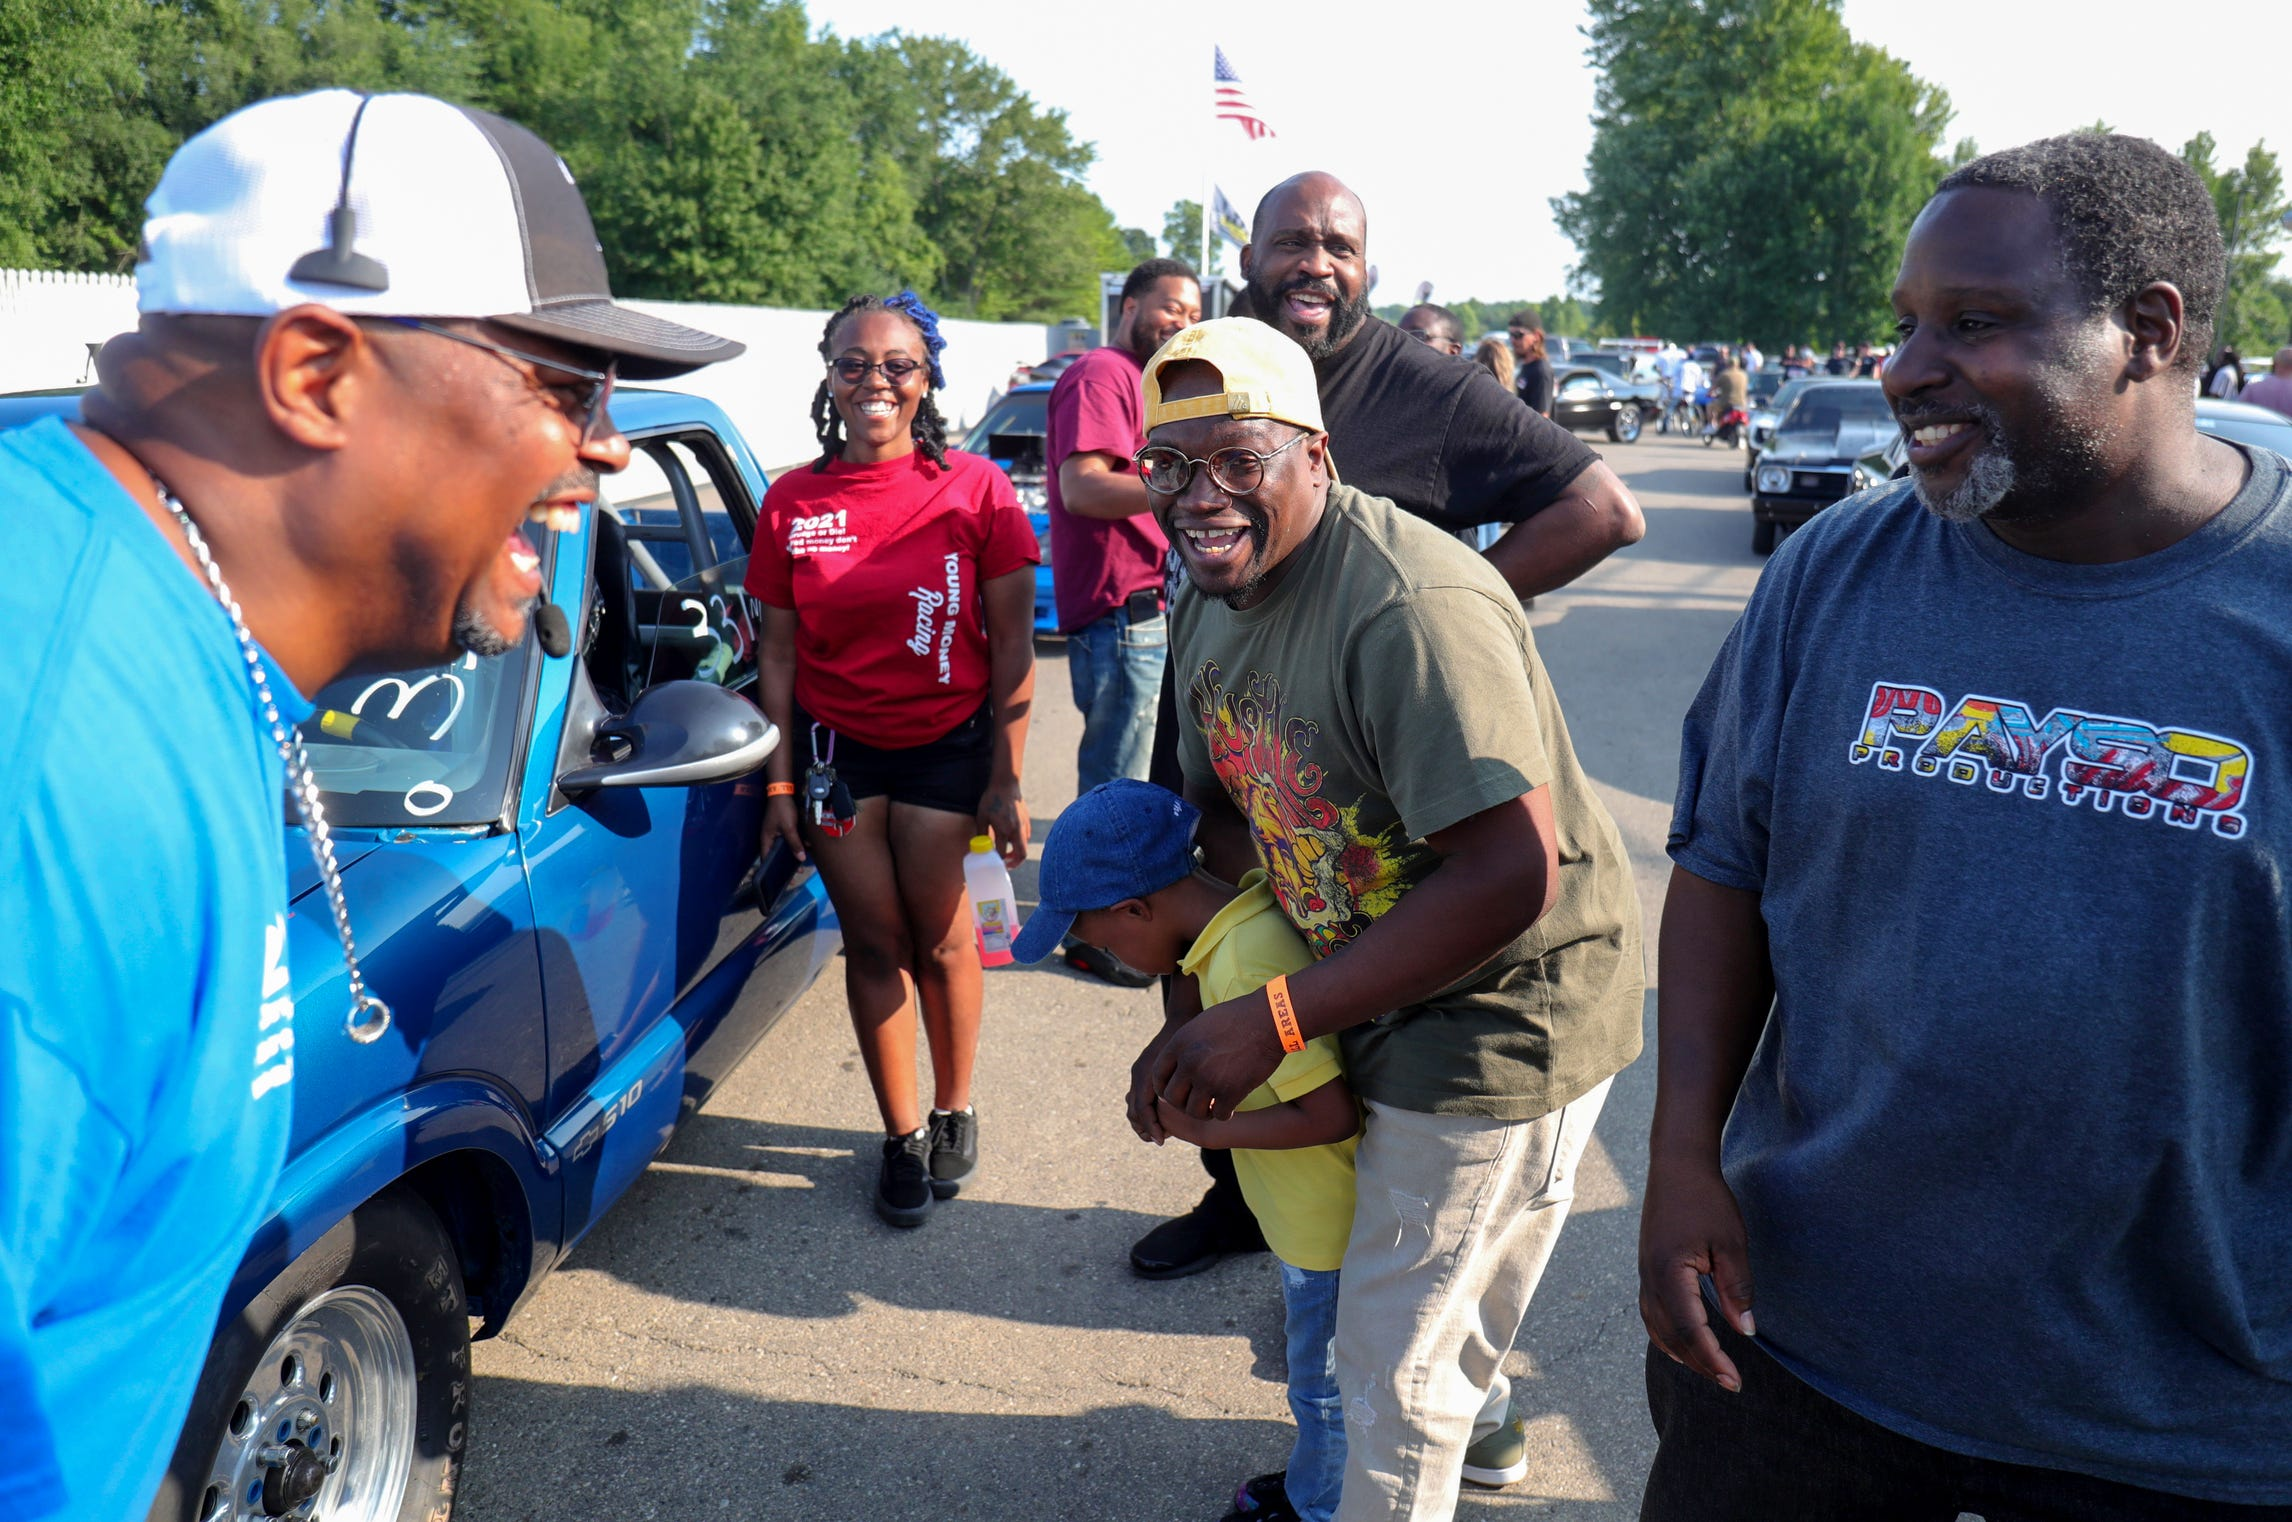 """Stafford Wilson and fellow racers do a little trash talking before his son Joemari Fox's race at Lapeer International Dragway Saturday, July 17, 2021. He completed the course in a little over 8 seconds. Joemari often catches attention because of his 5-foot-2, 115-pound frame and on this day one of his competitors pulled out his wallet and said """"Joemari sit on this so you can see over the steering wheel"""" his dad countered with """"My son will be making his second or third pass while you are still in the pits."""""""